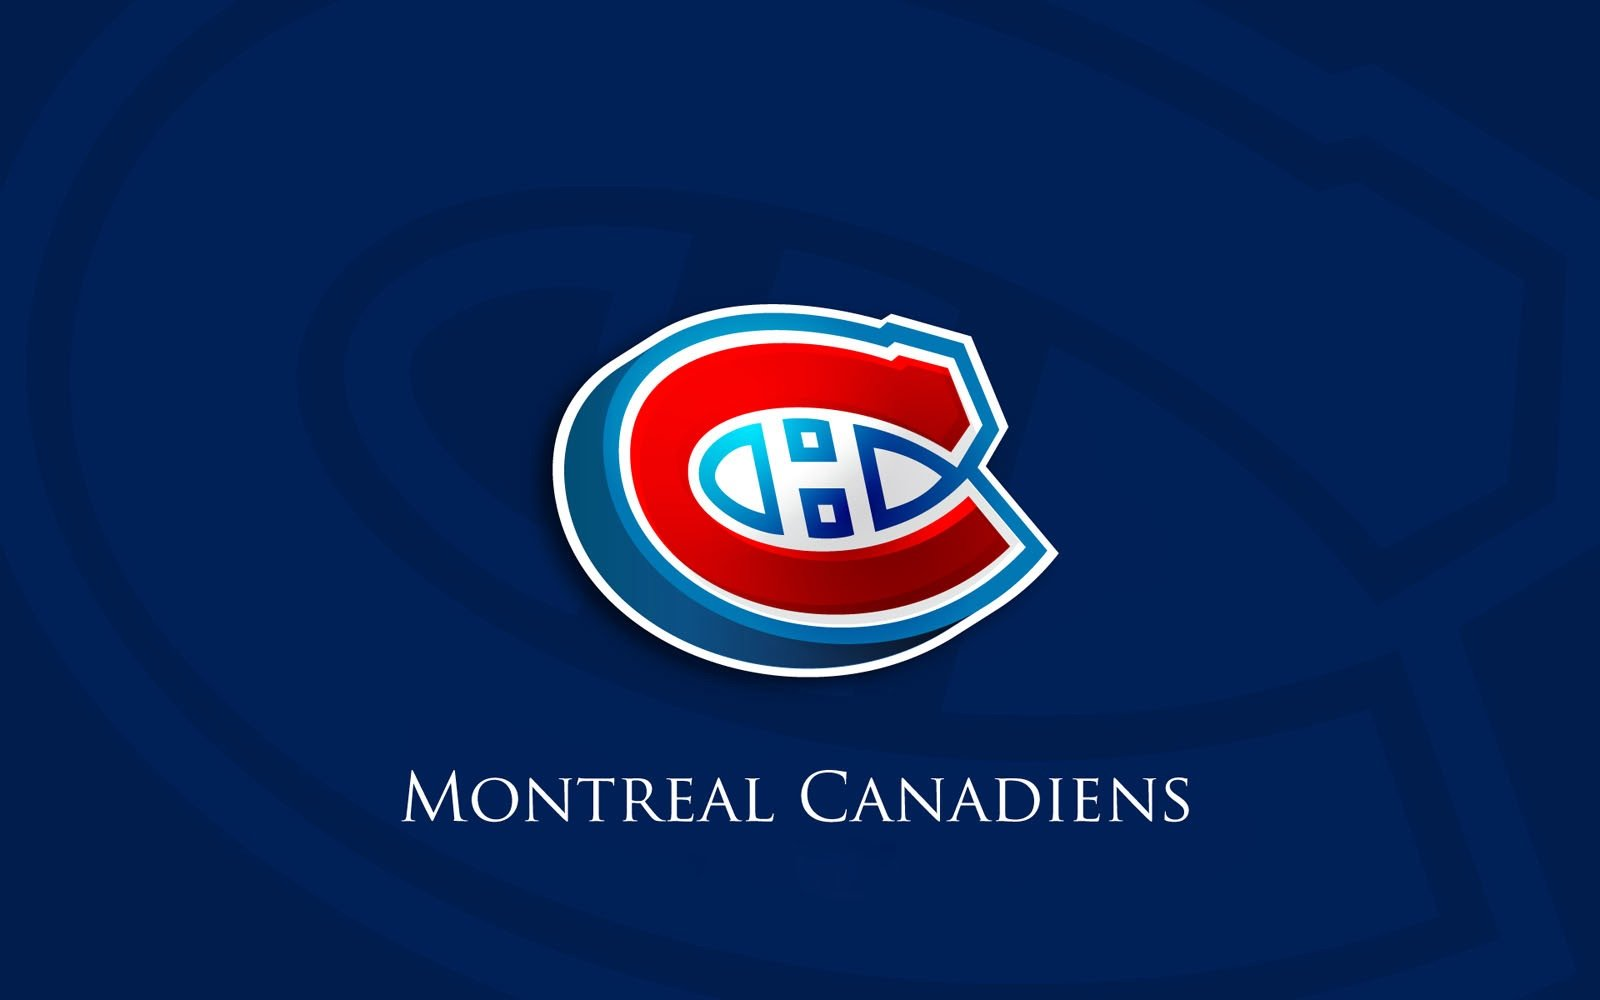 Tag Montreal Canadiens Wallpapers Backgrounds Photos Images and 1600x1000